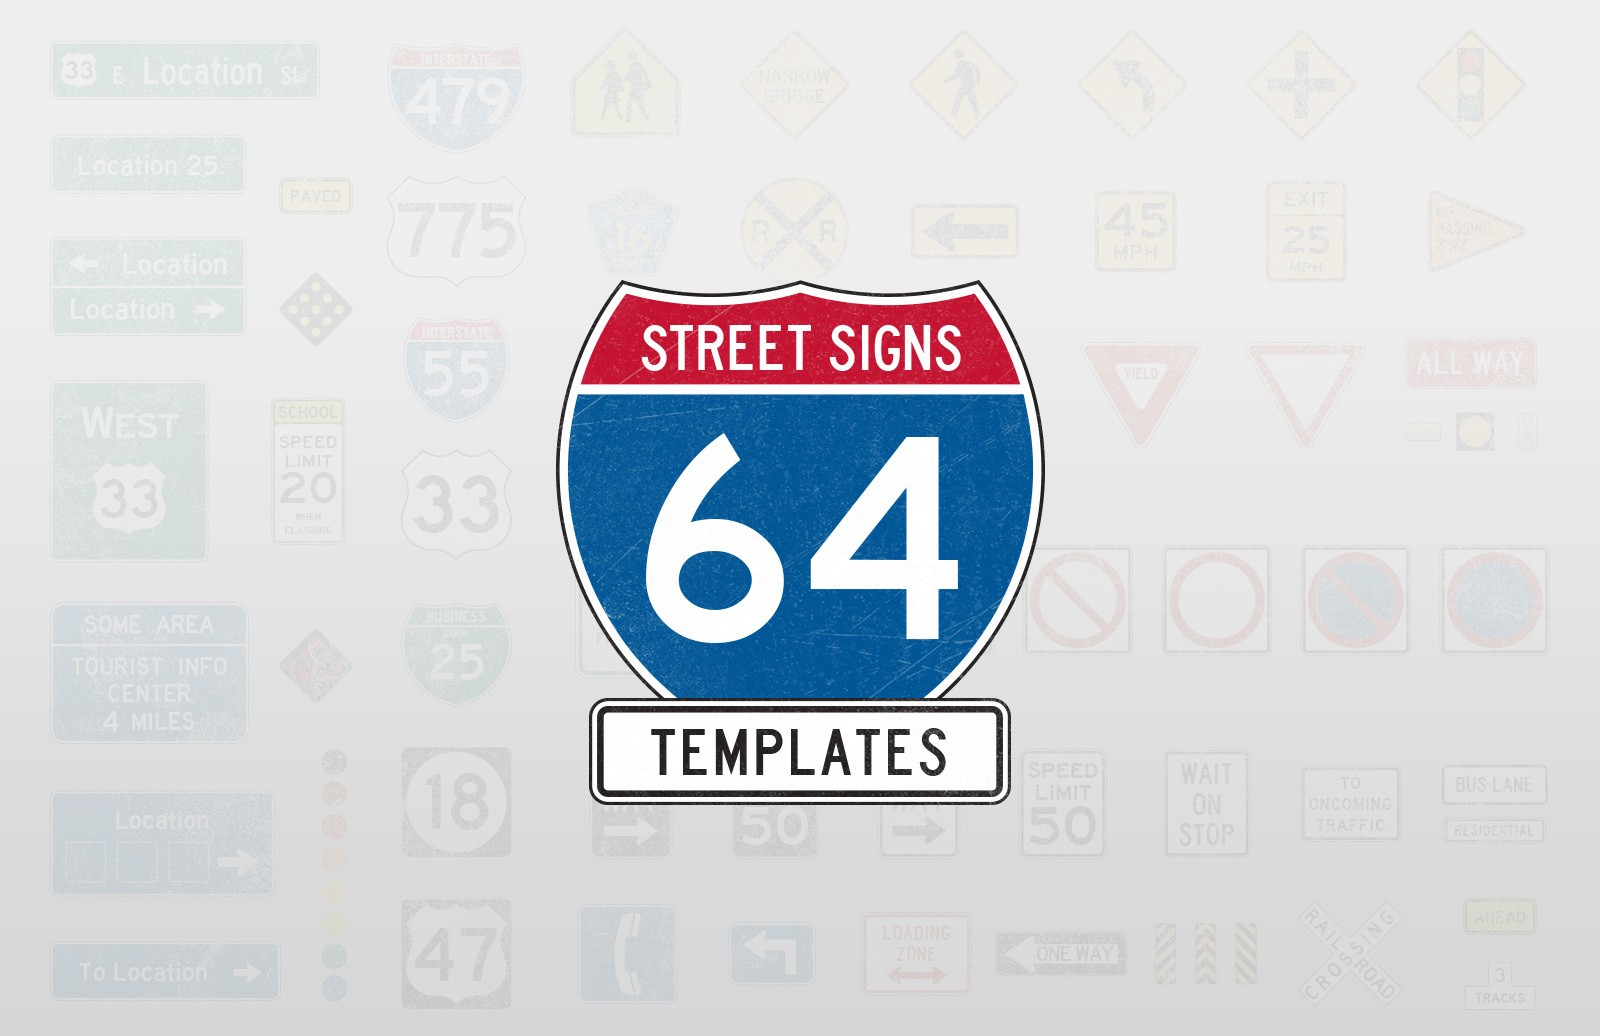 Street Signs Templates